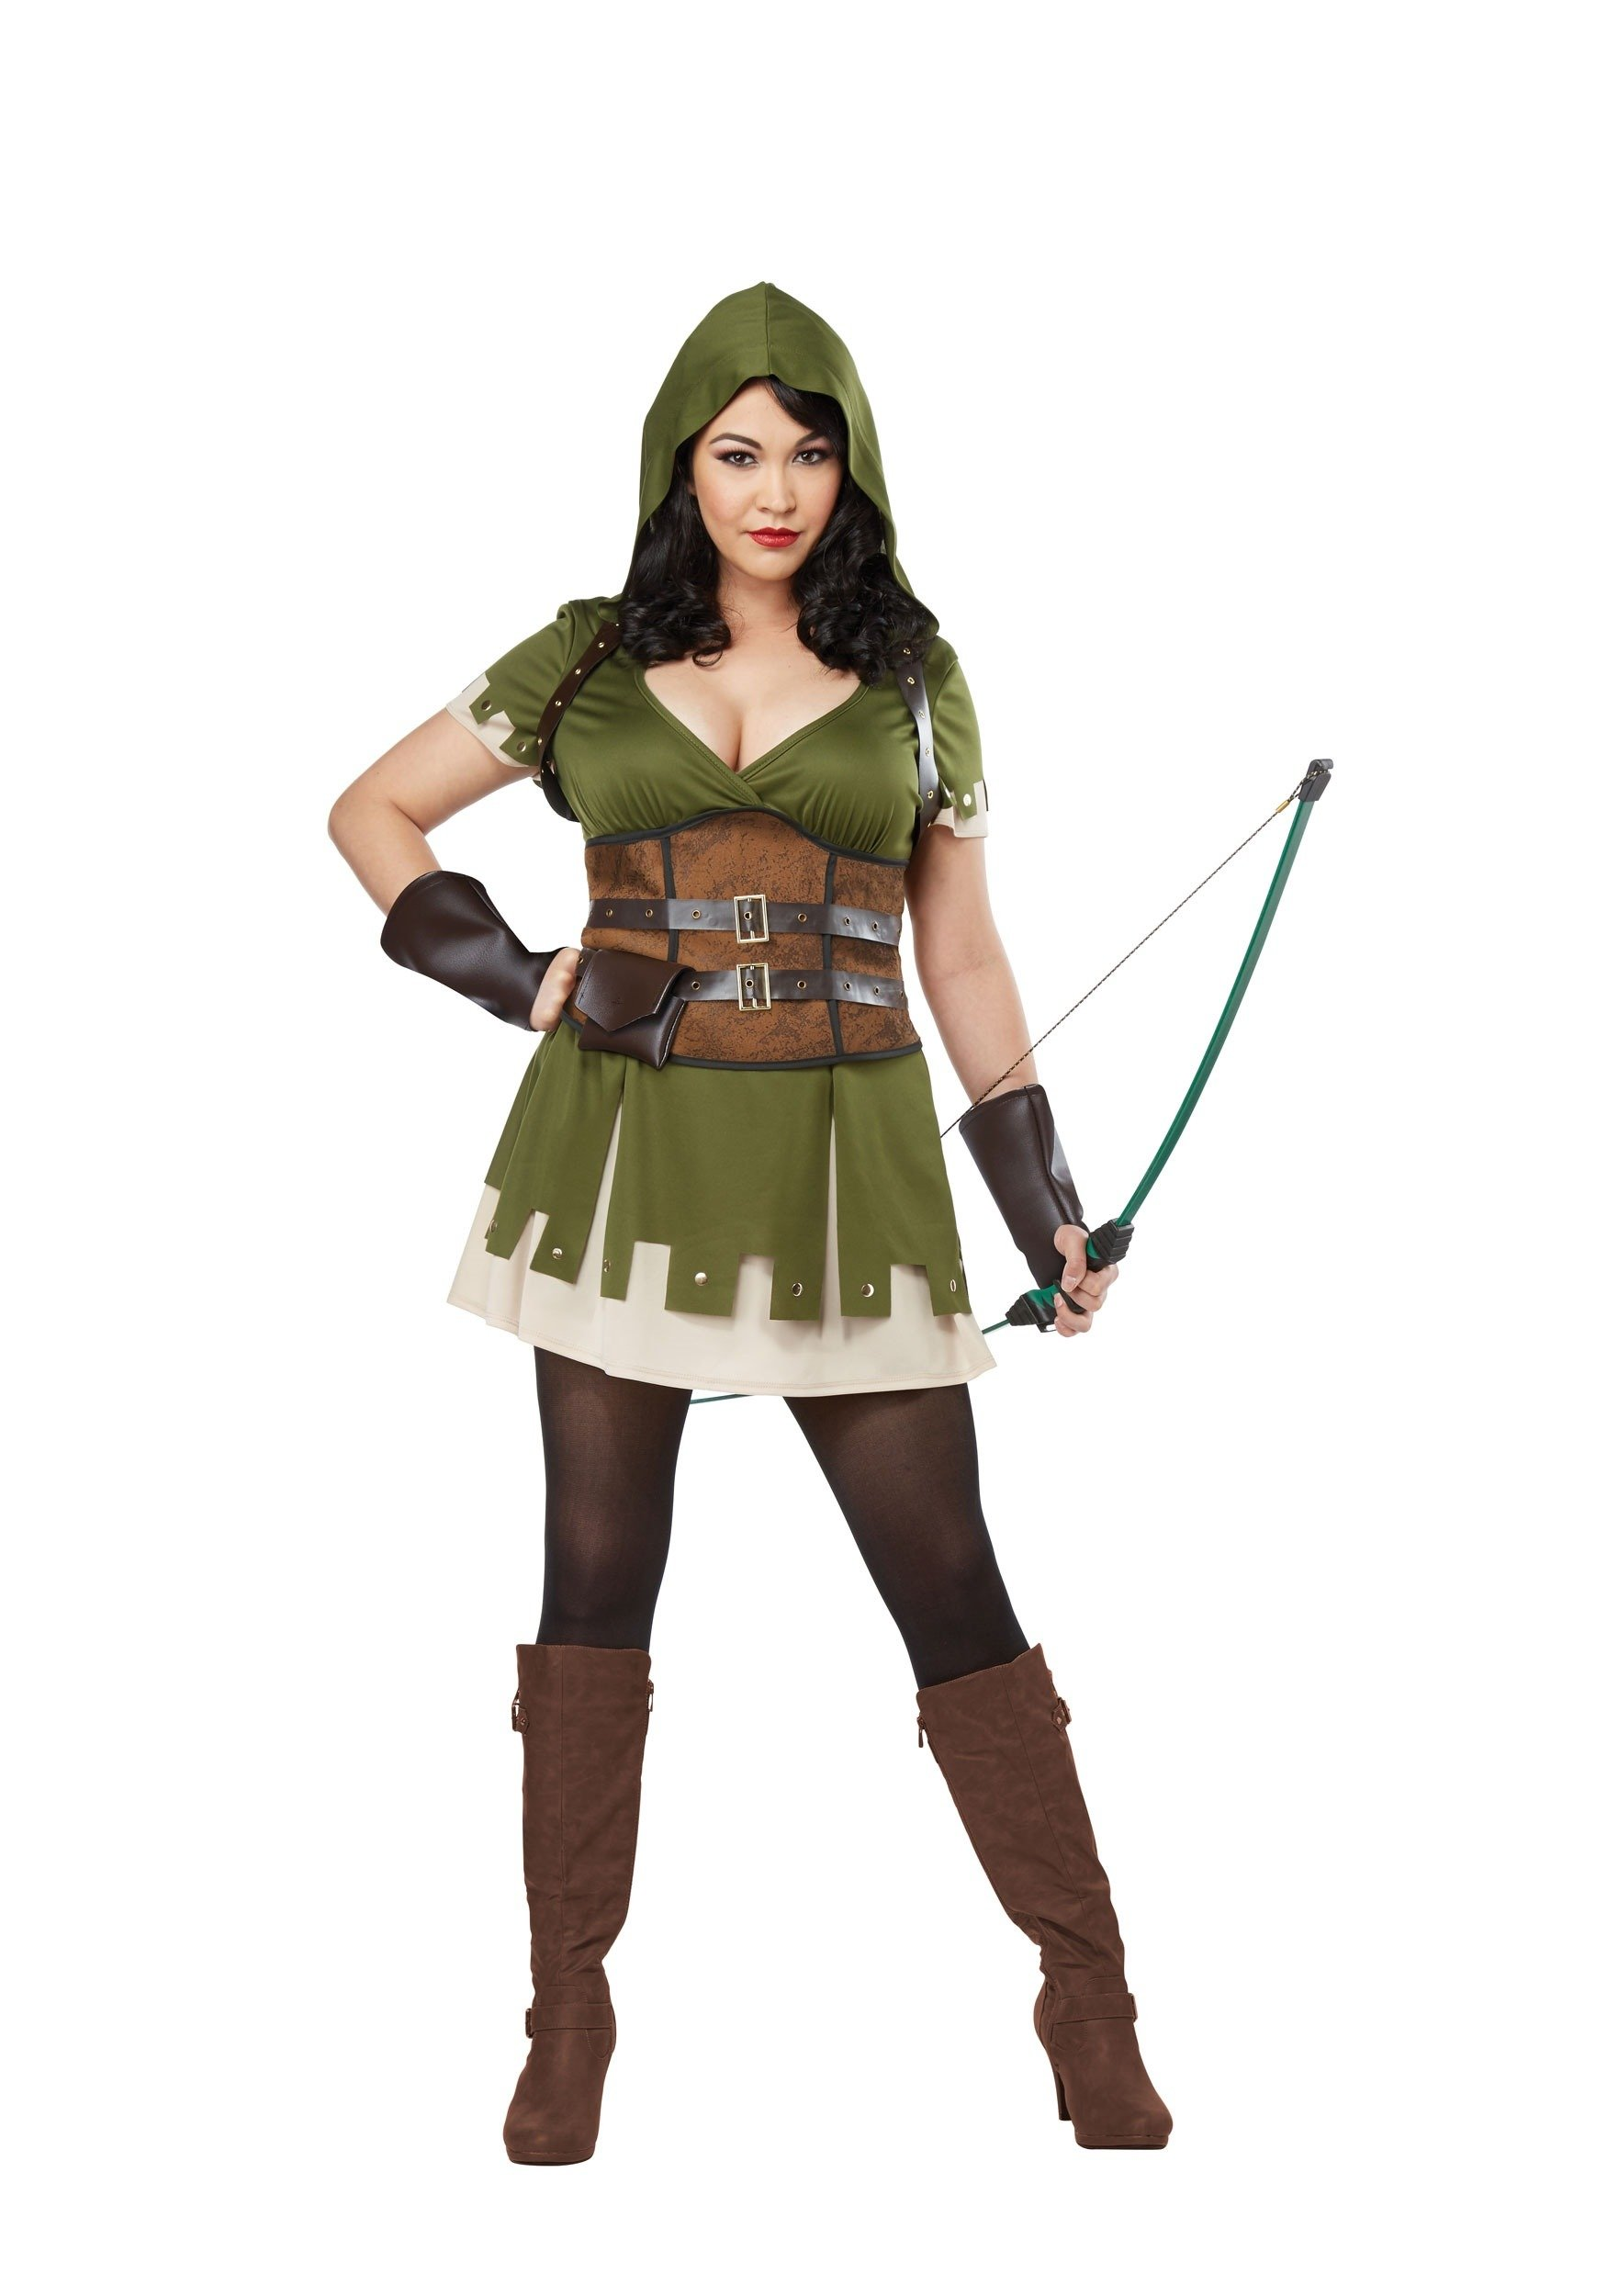 California Costumes Women's Size Lady Robin Hood Adult Woman Plus, Olive/Brown, 3X Large